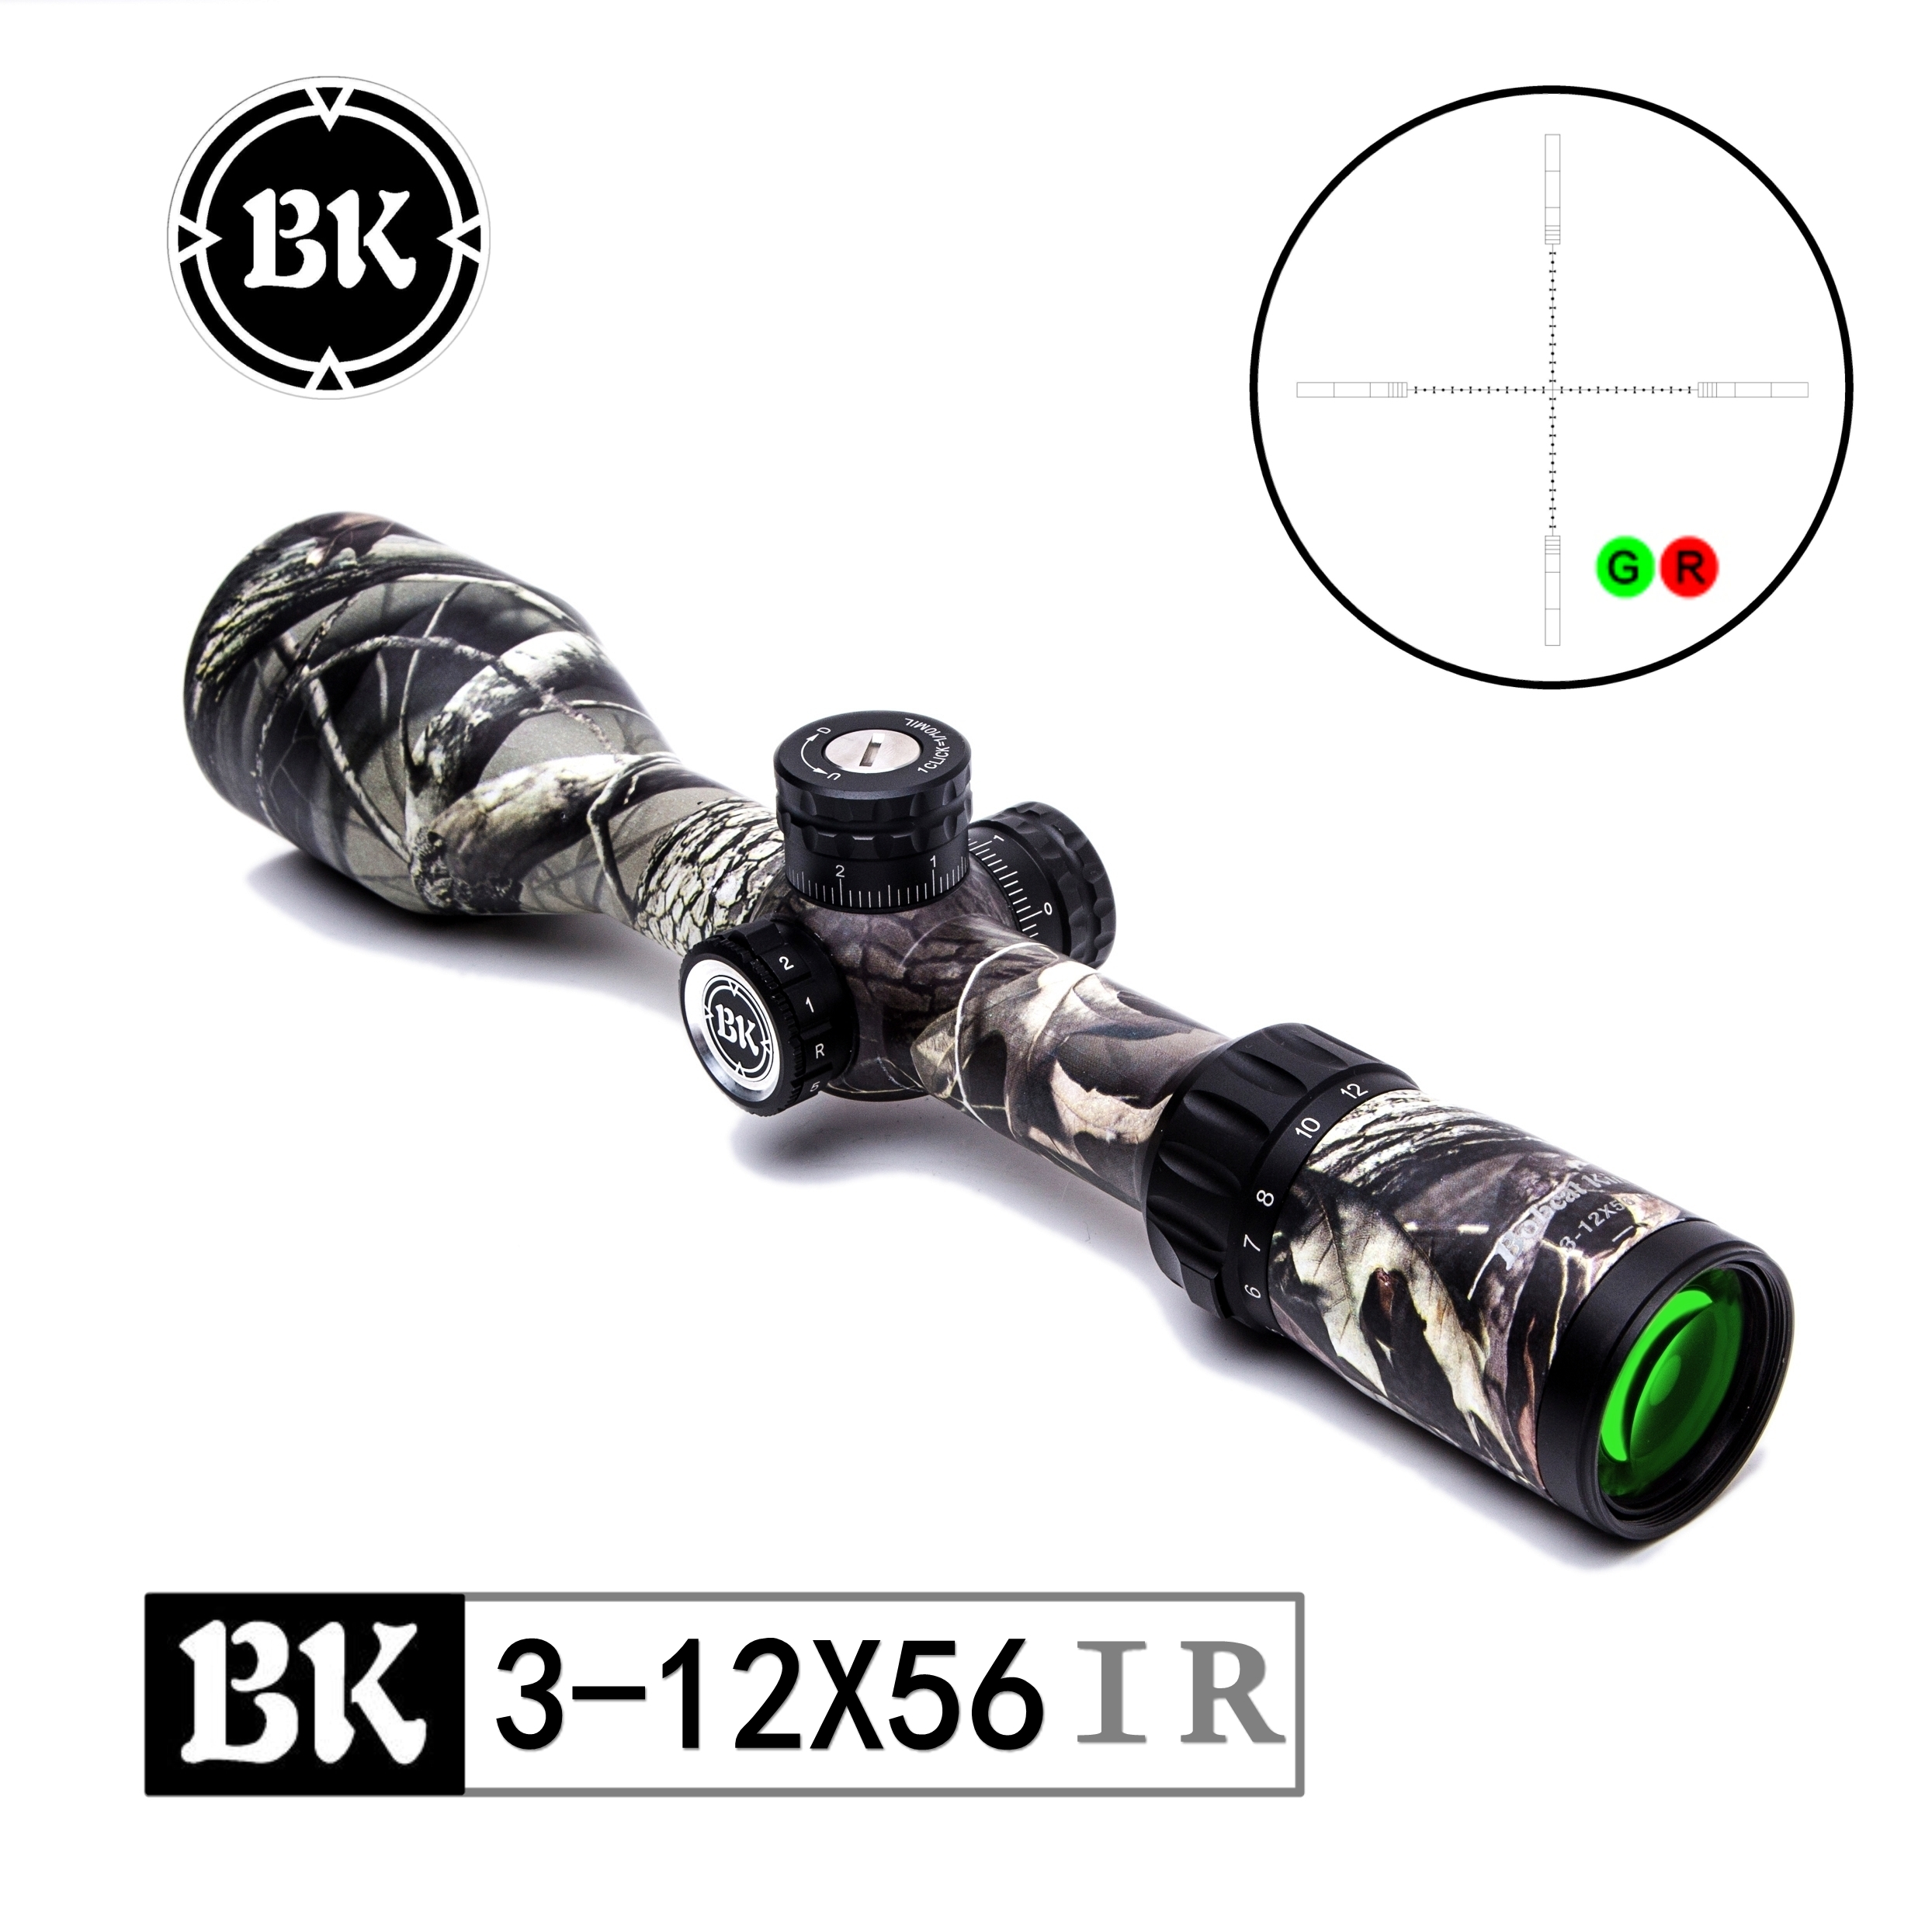 Bobcat King optical BK 3 12X56 IR hunting air gun riflescope illumination rifle sight with glass reinforced reticle fast focus in Riflescopes from Sports Entertainment